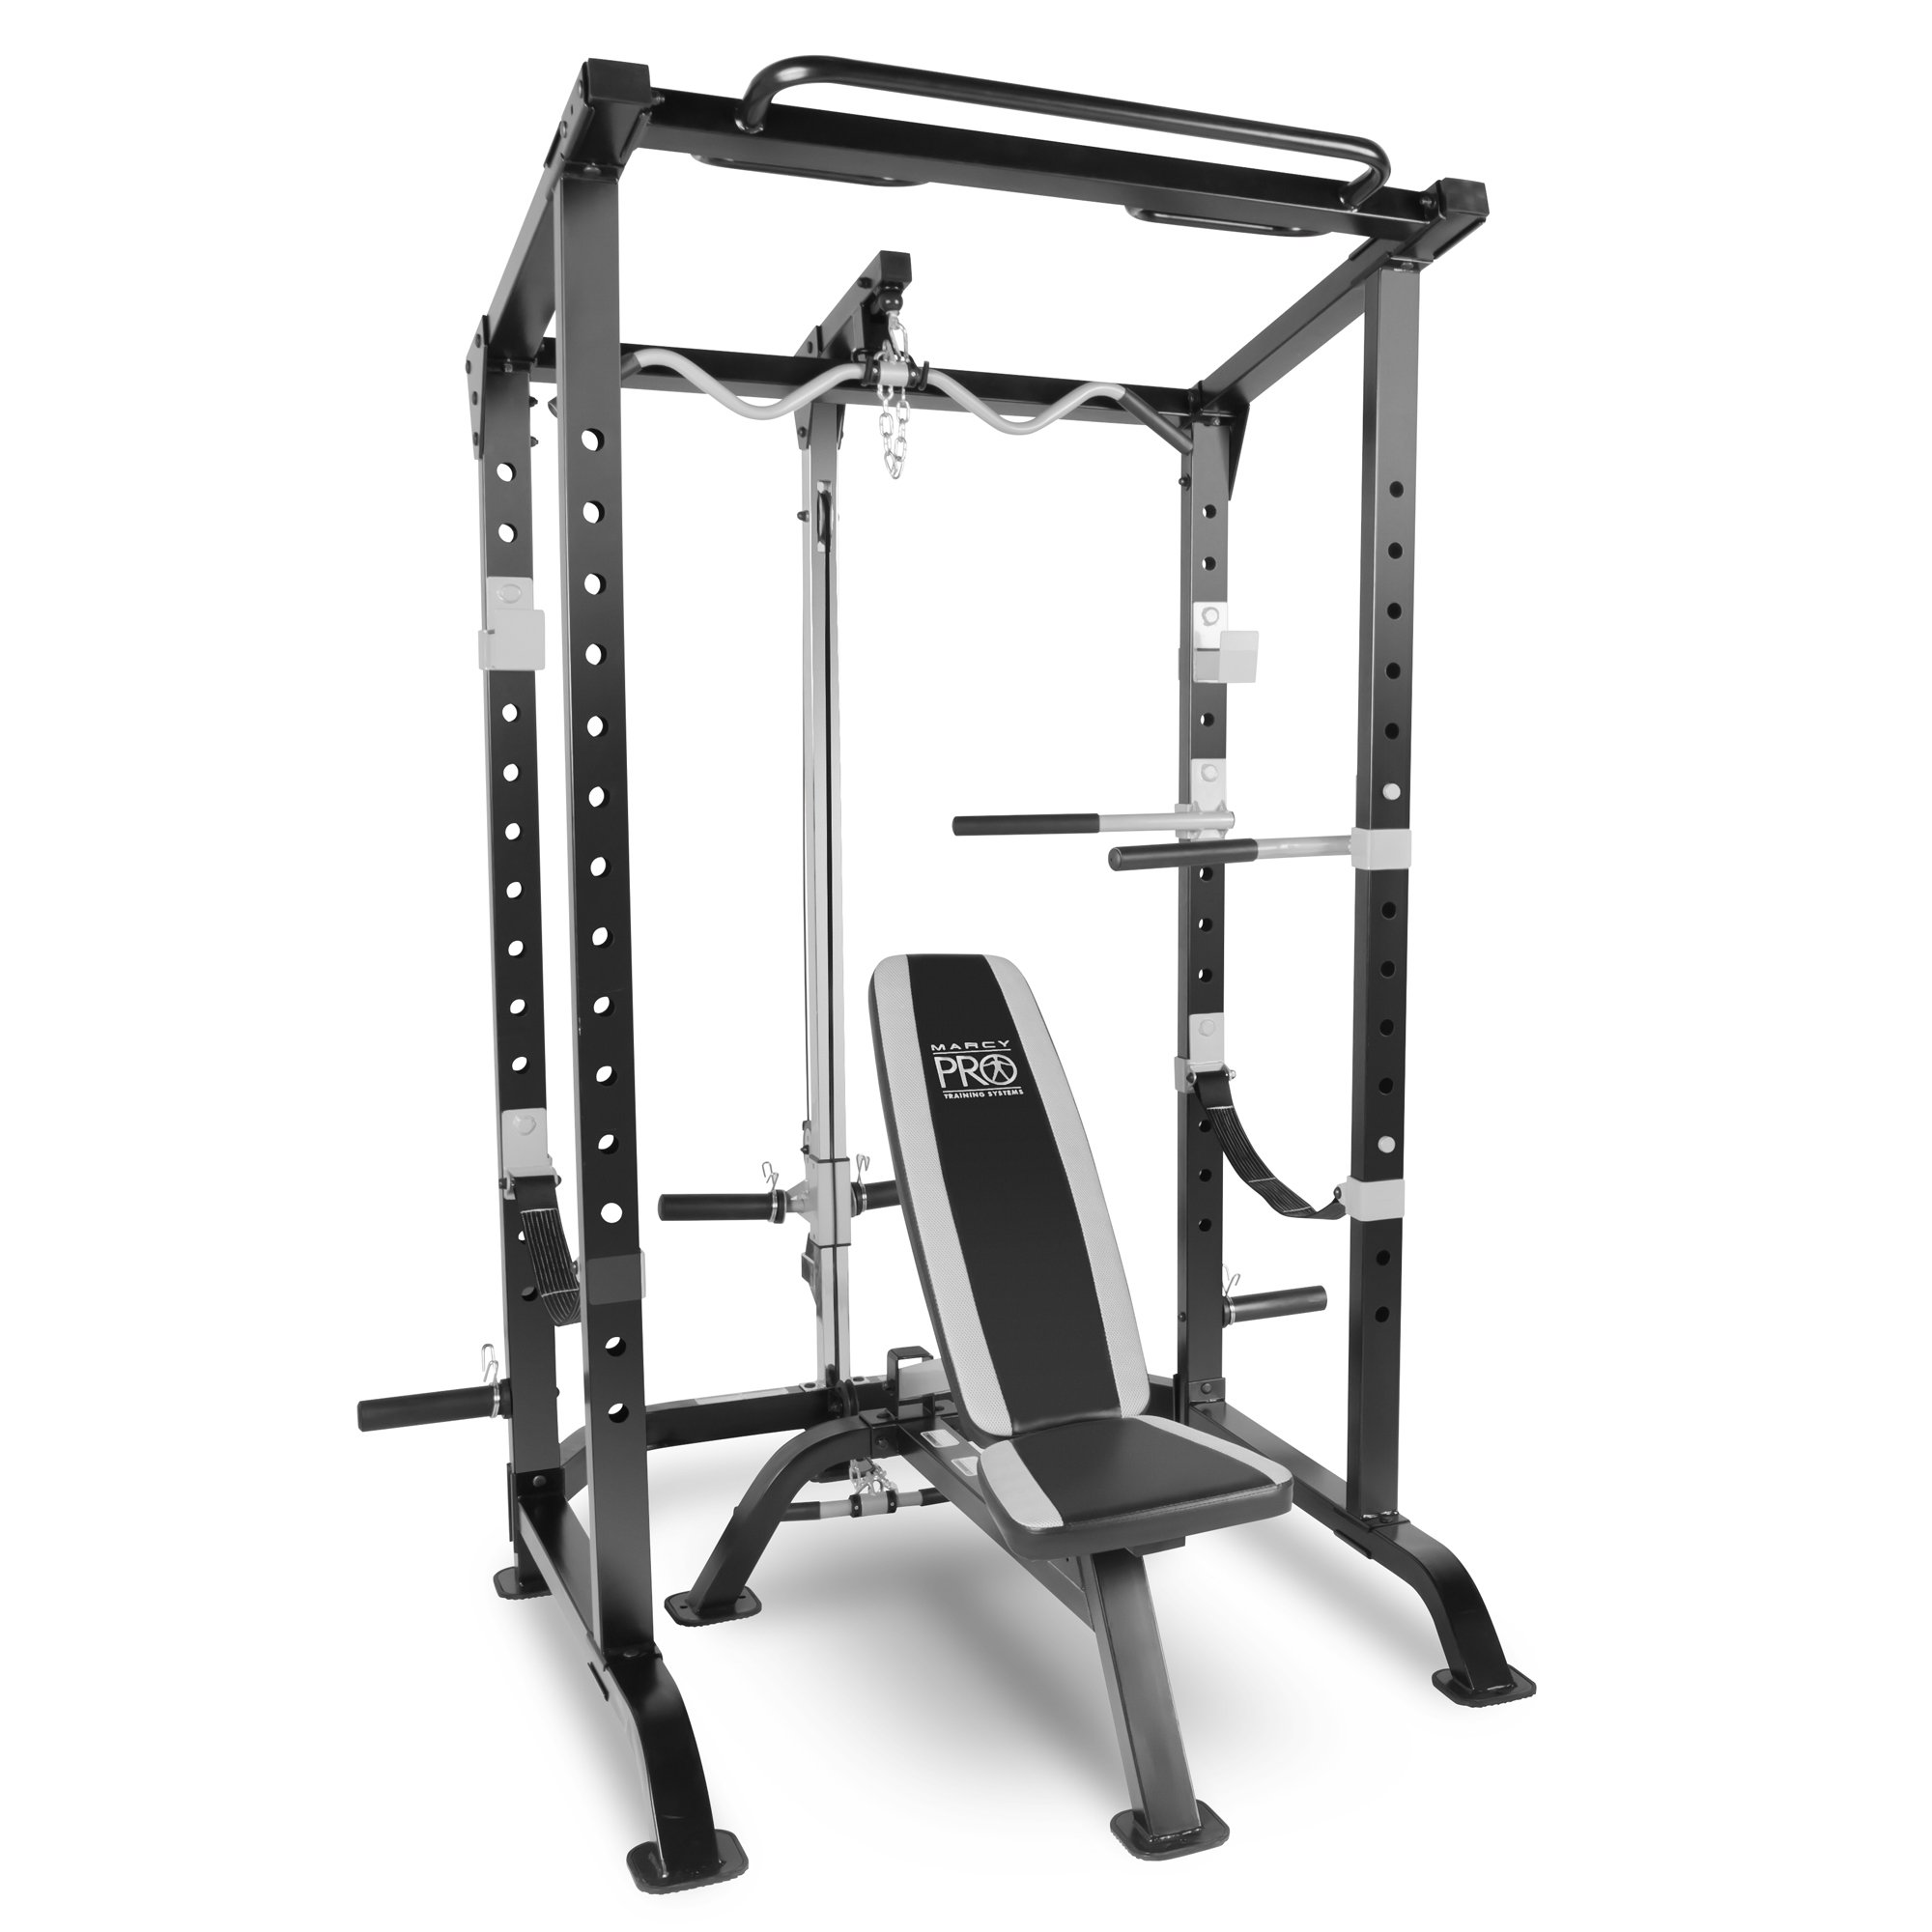 Weight Bench with Weight Set | Powerhouse Weight Bench | Workout Benches